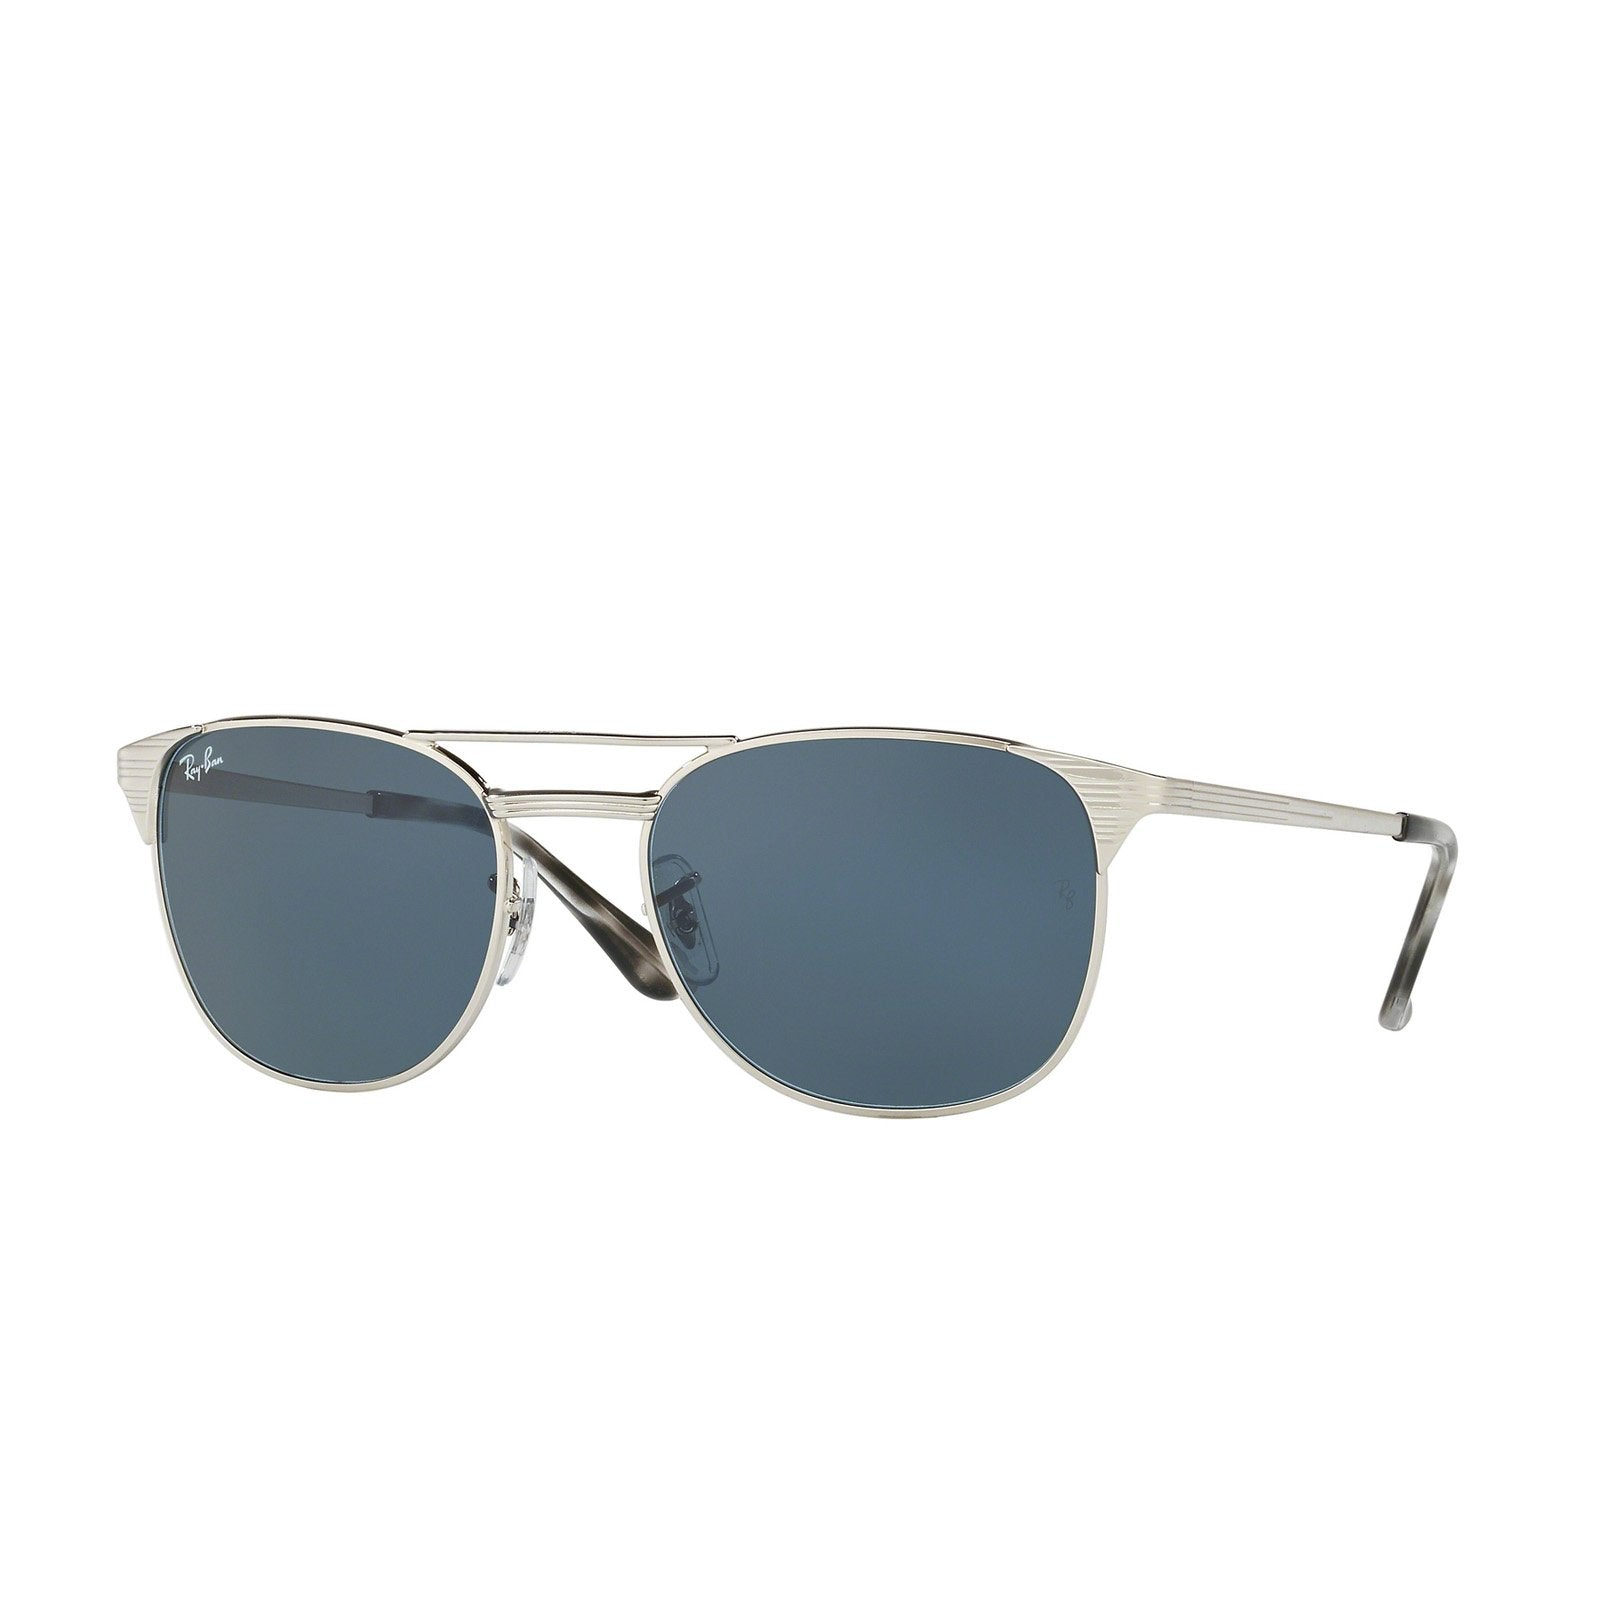 Ray-Ban RB3429M 003/R5 Sunglasses